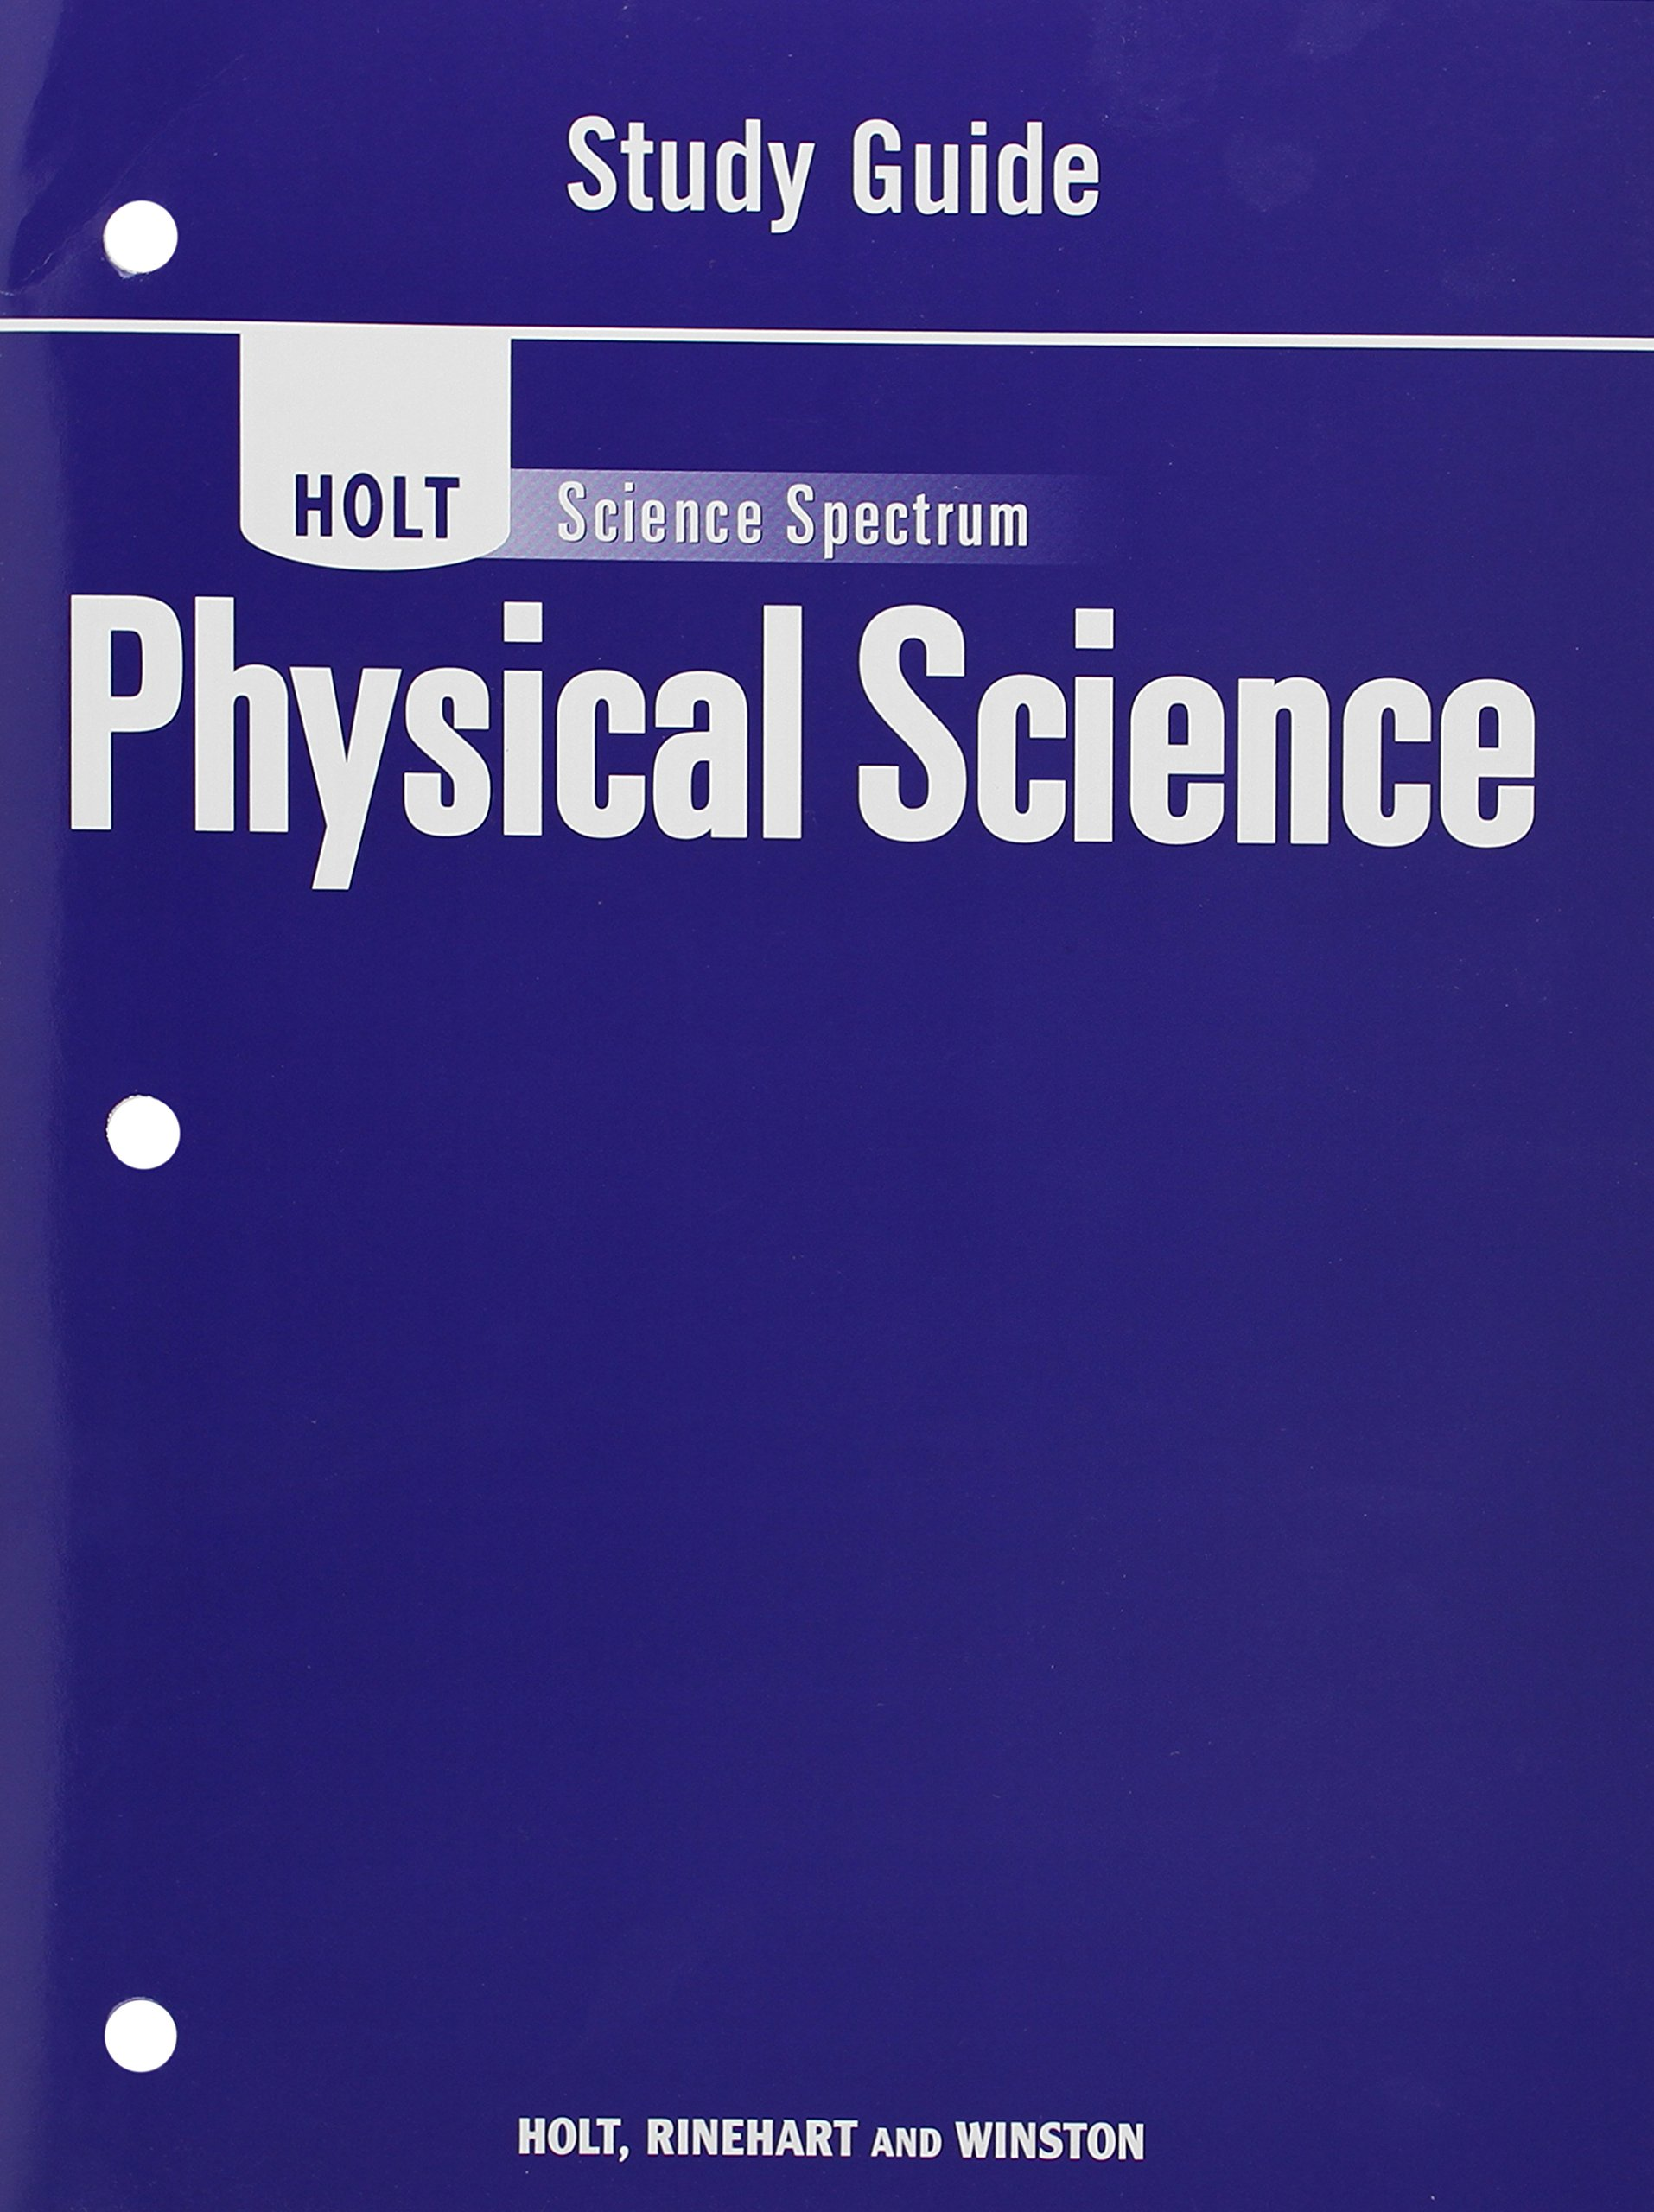 Holt Science Spectrum: Physical Science with Earth and Space Science: Study  Guide: RINEHART AND WINSTON HOLT: 9780030936265: Amazon.com: Books